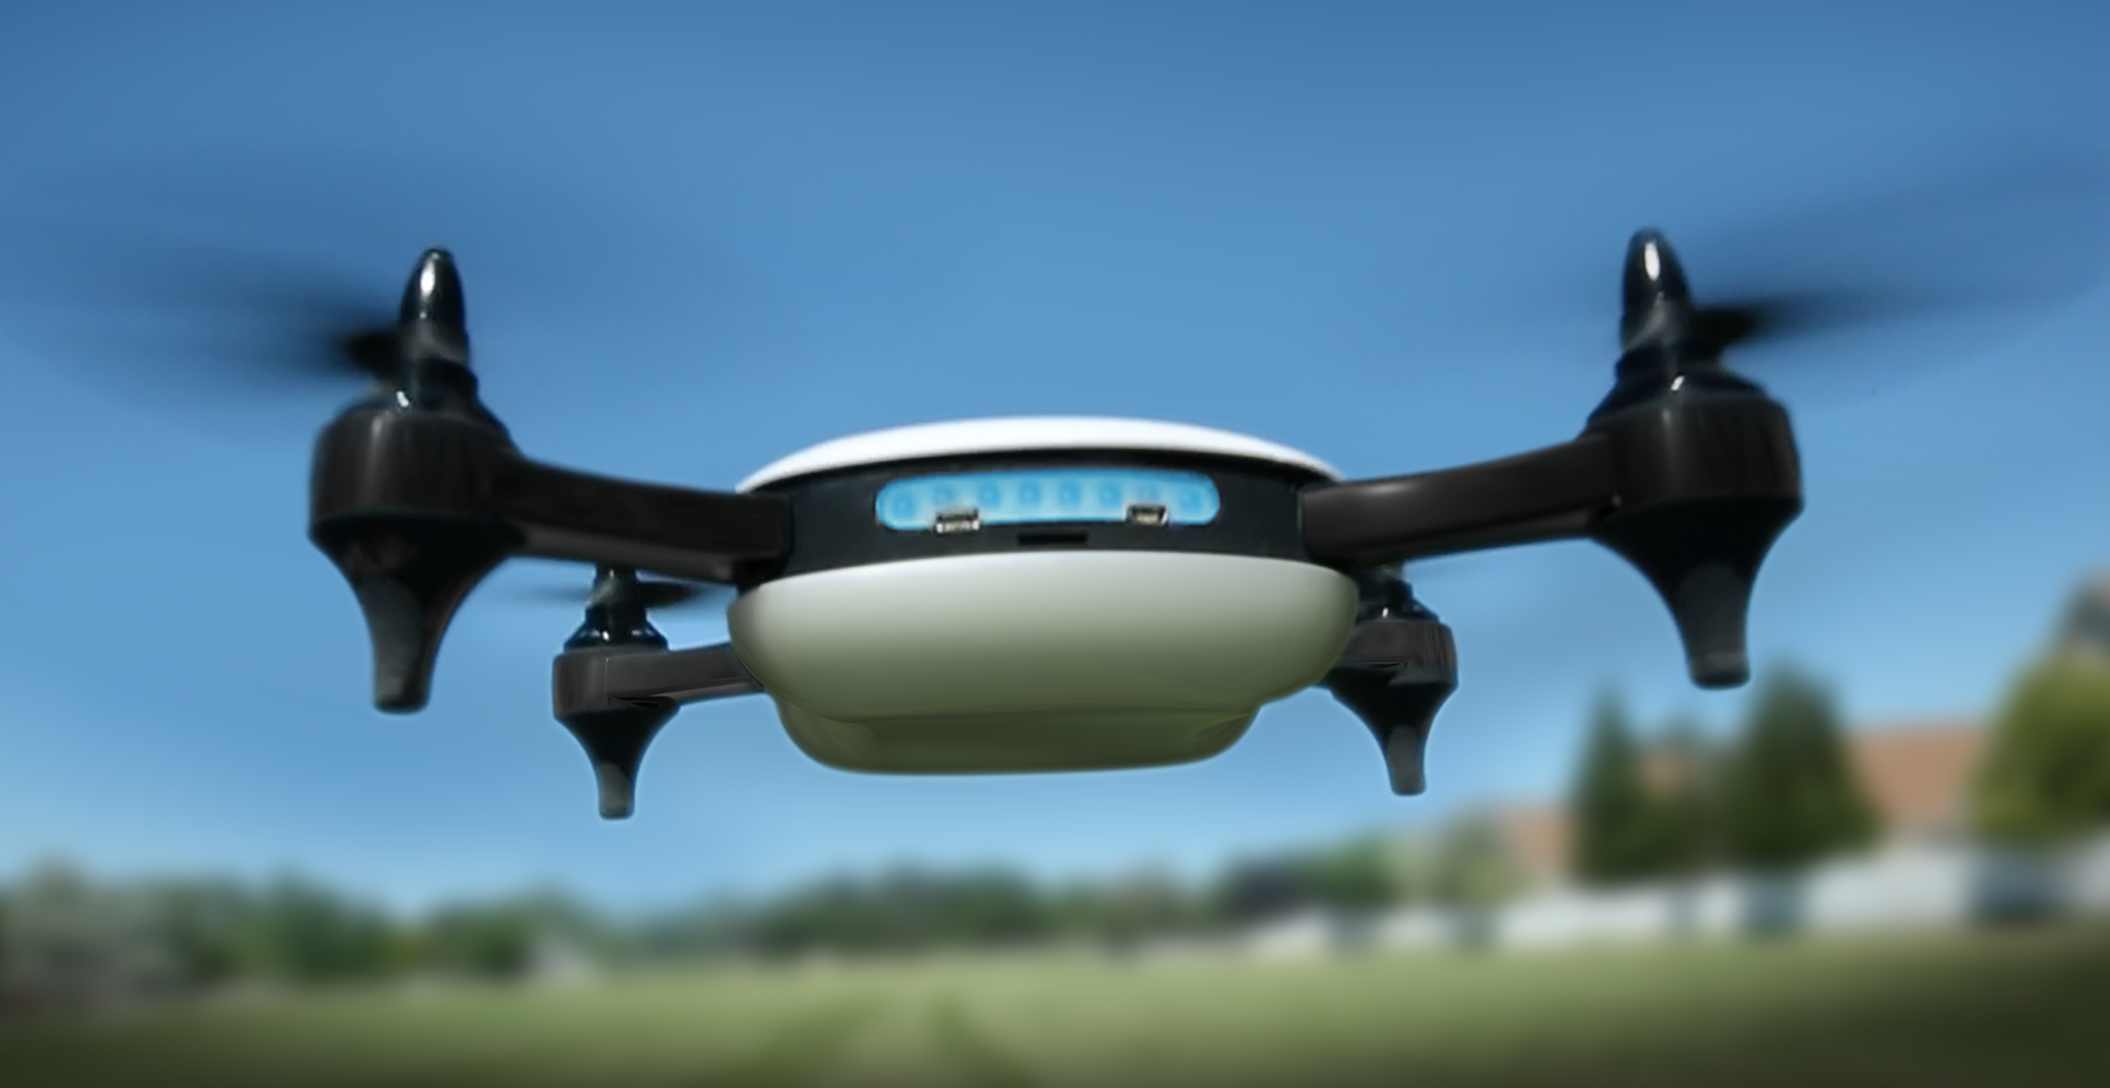 The World S Fastest Consumer Drone Can Record 4k Video At